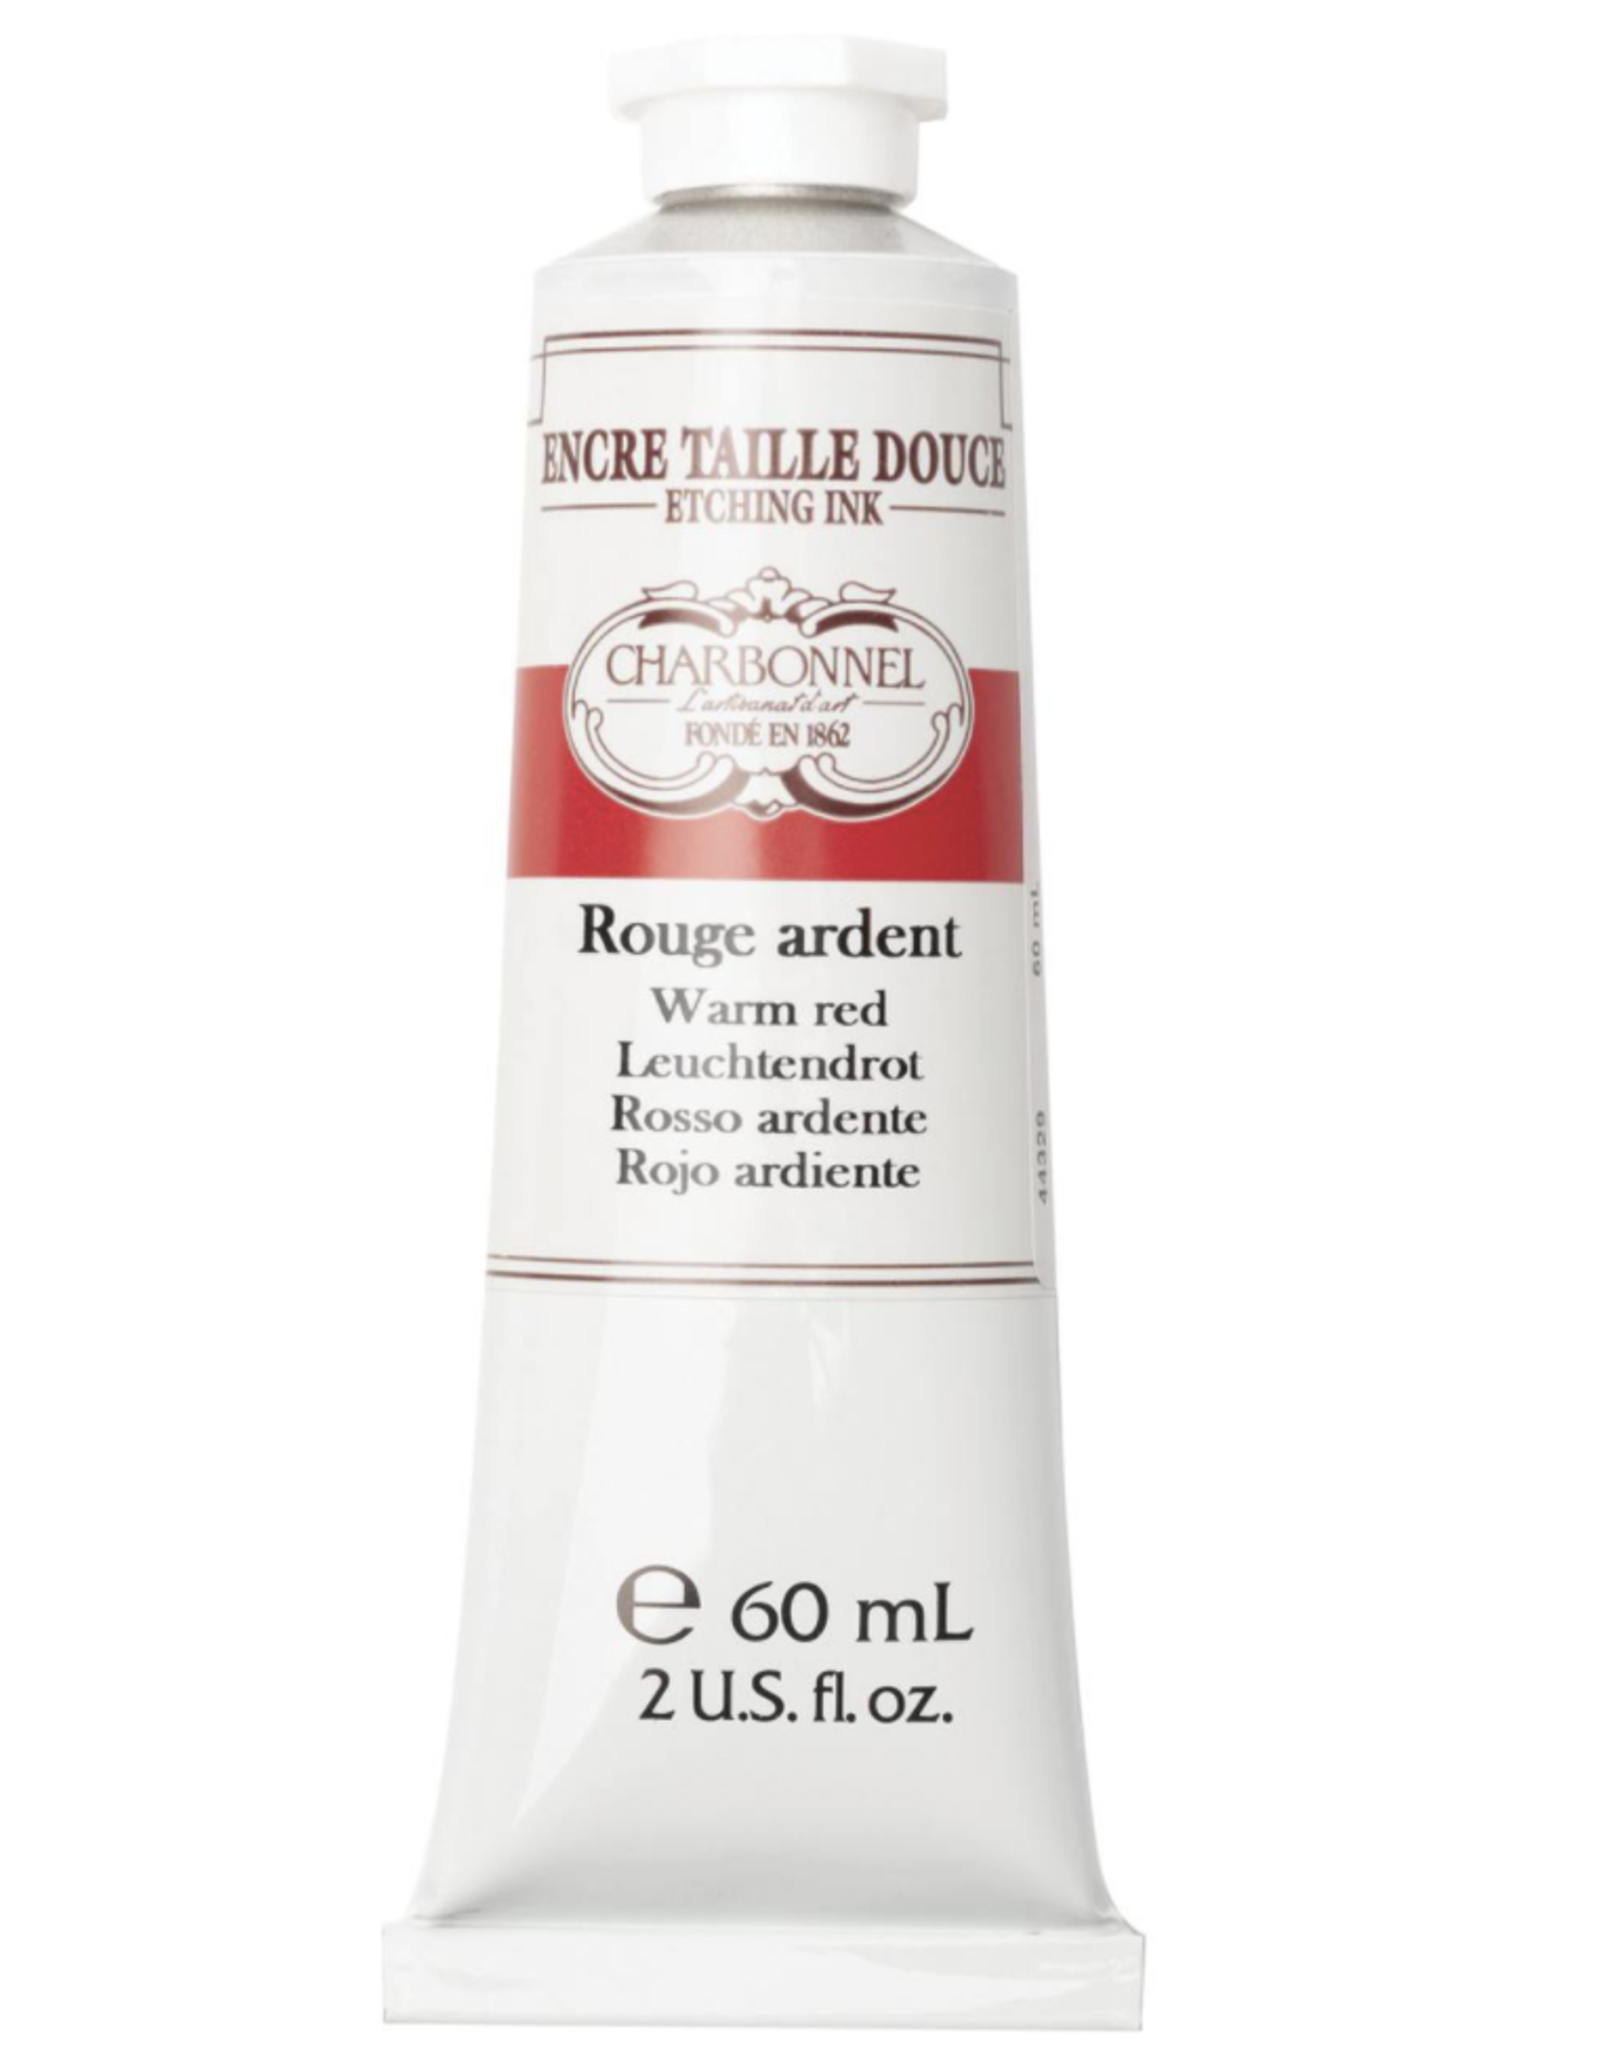 Charbonnel, Etching Ink, Warm Red, Series 5, 60ml, Tube